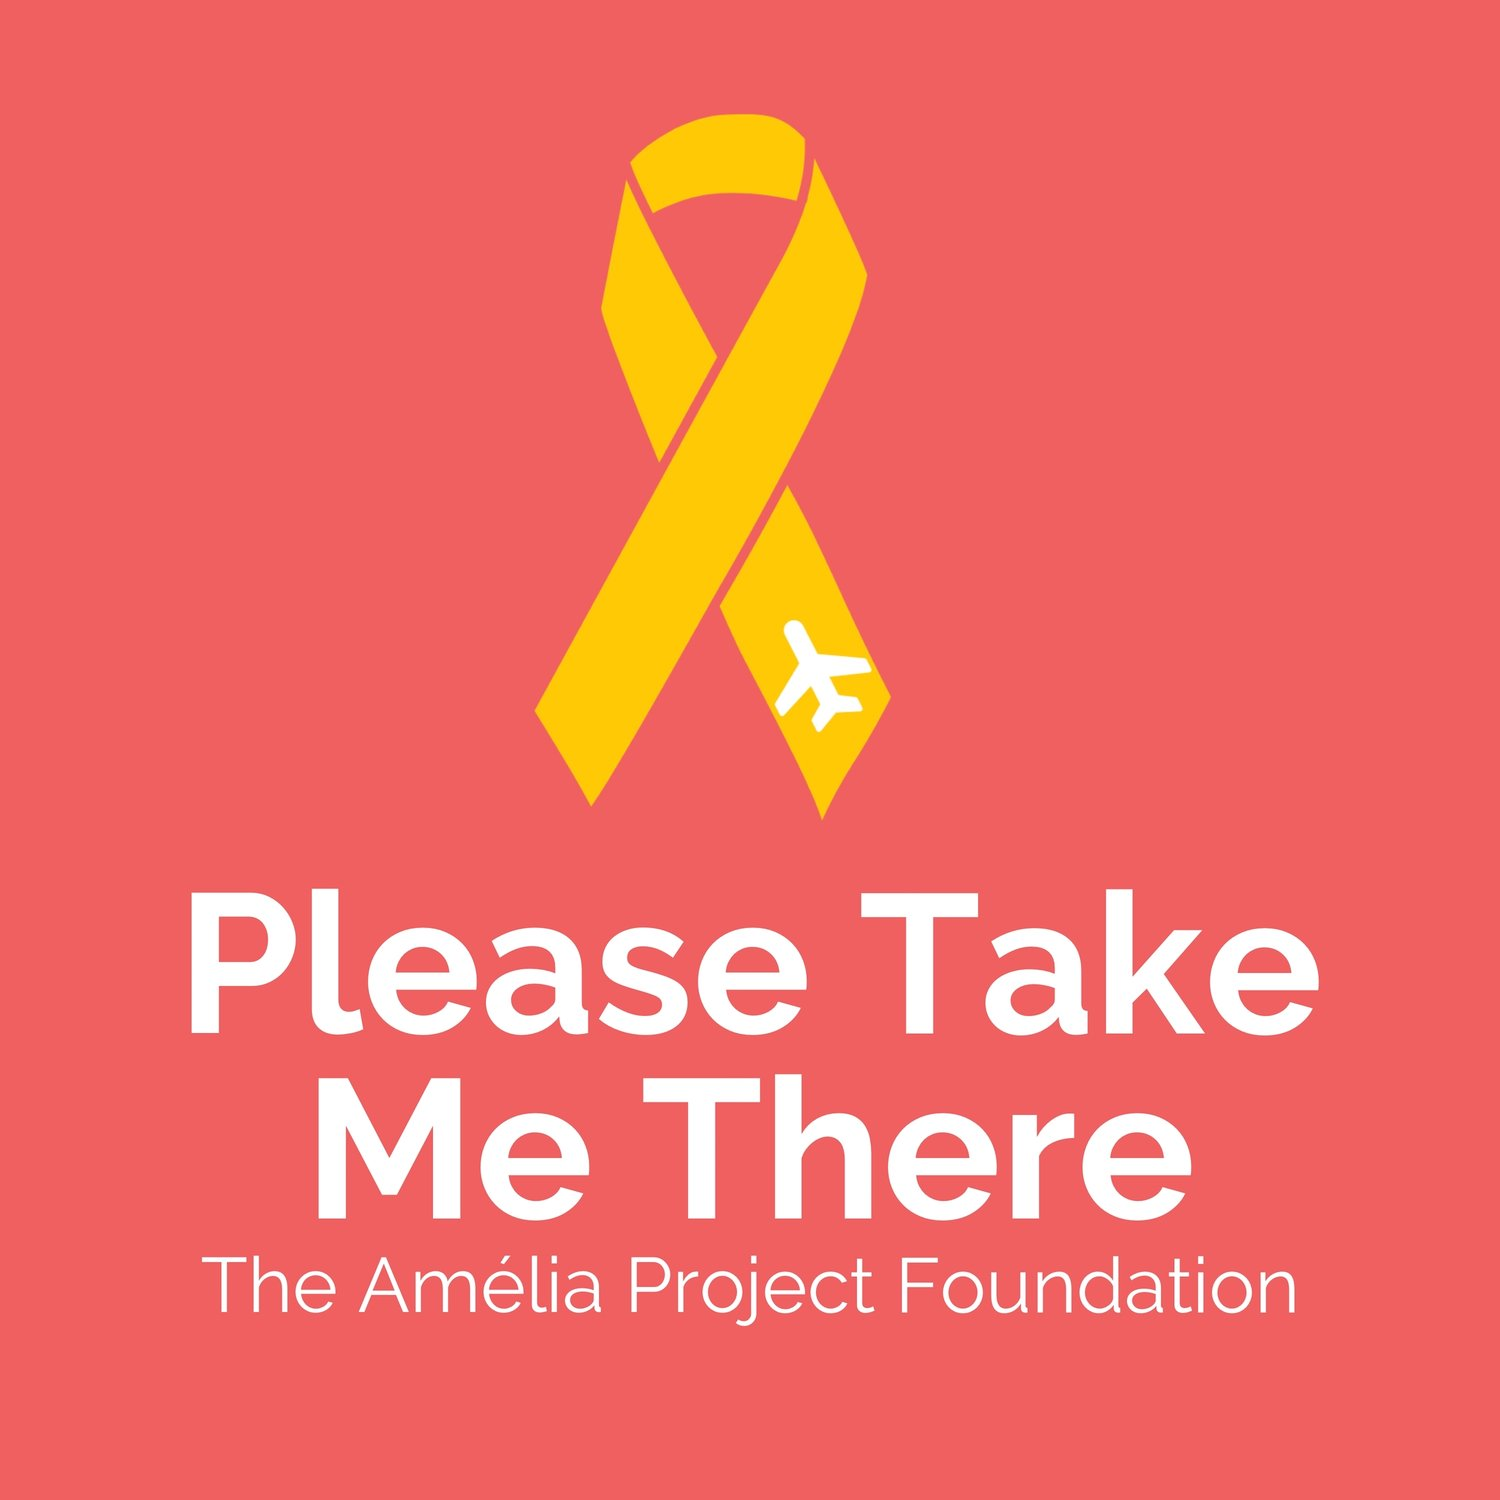 The Amélia Project Foundation